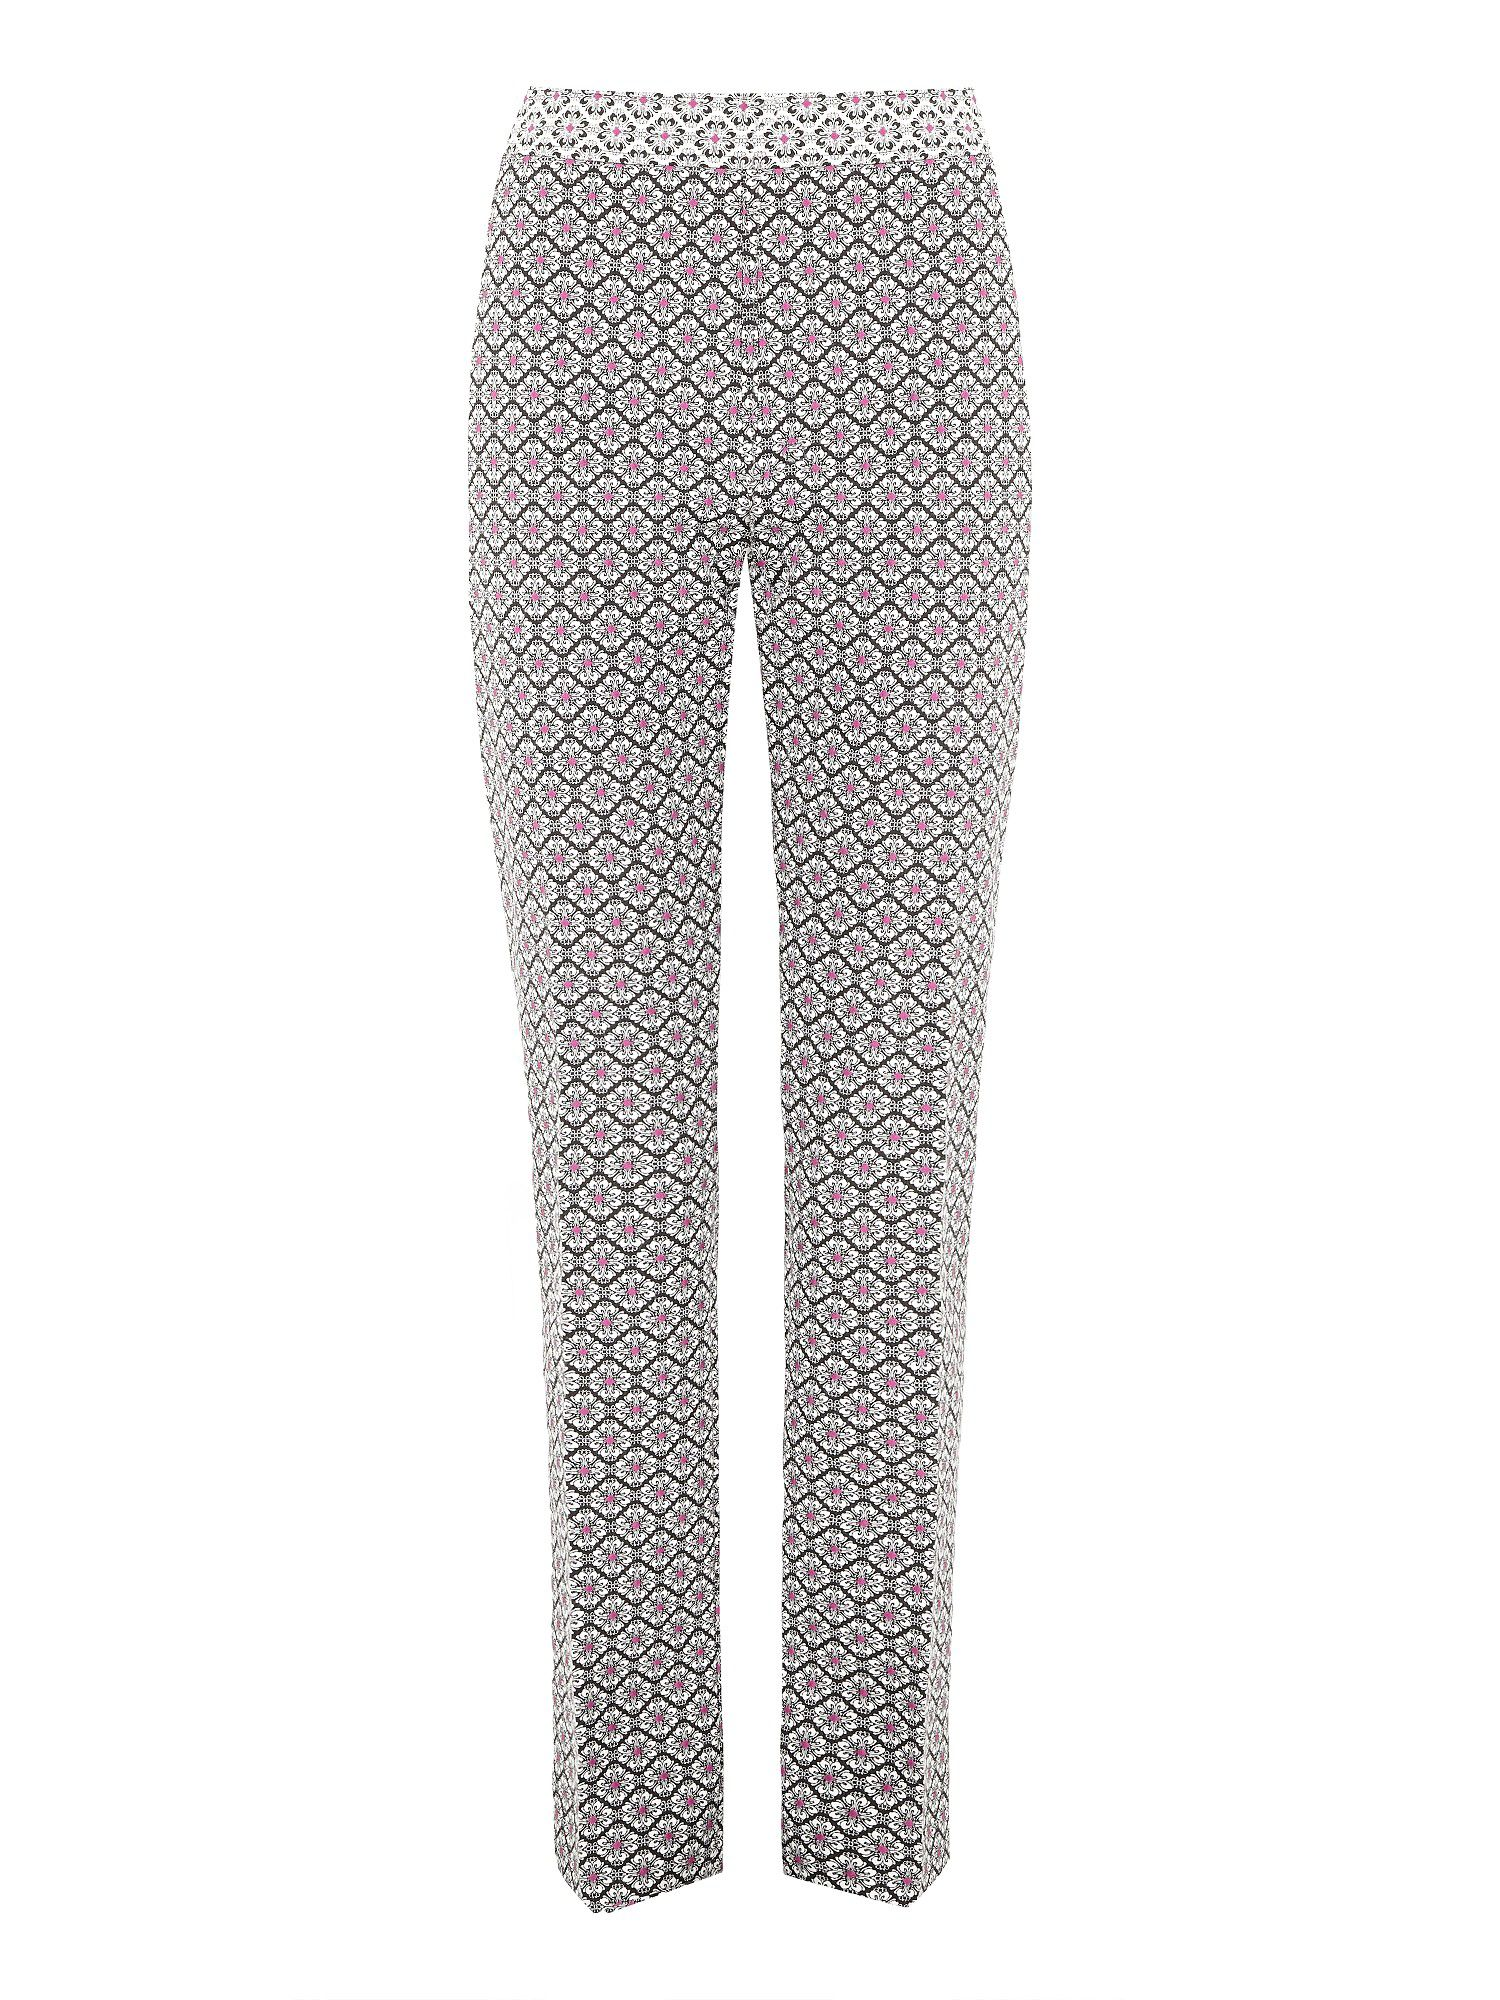 Jacquard textured trousers